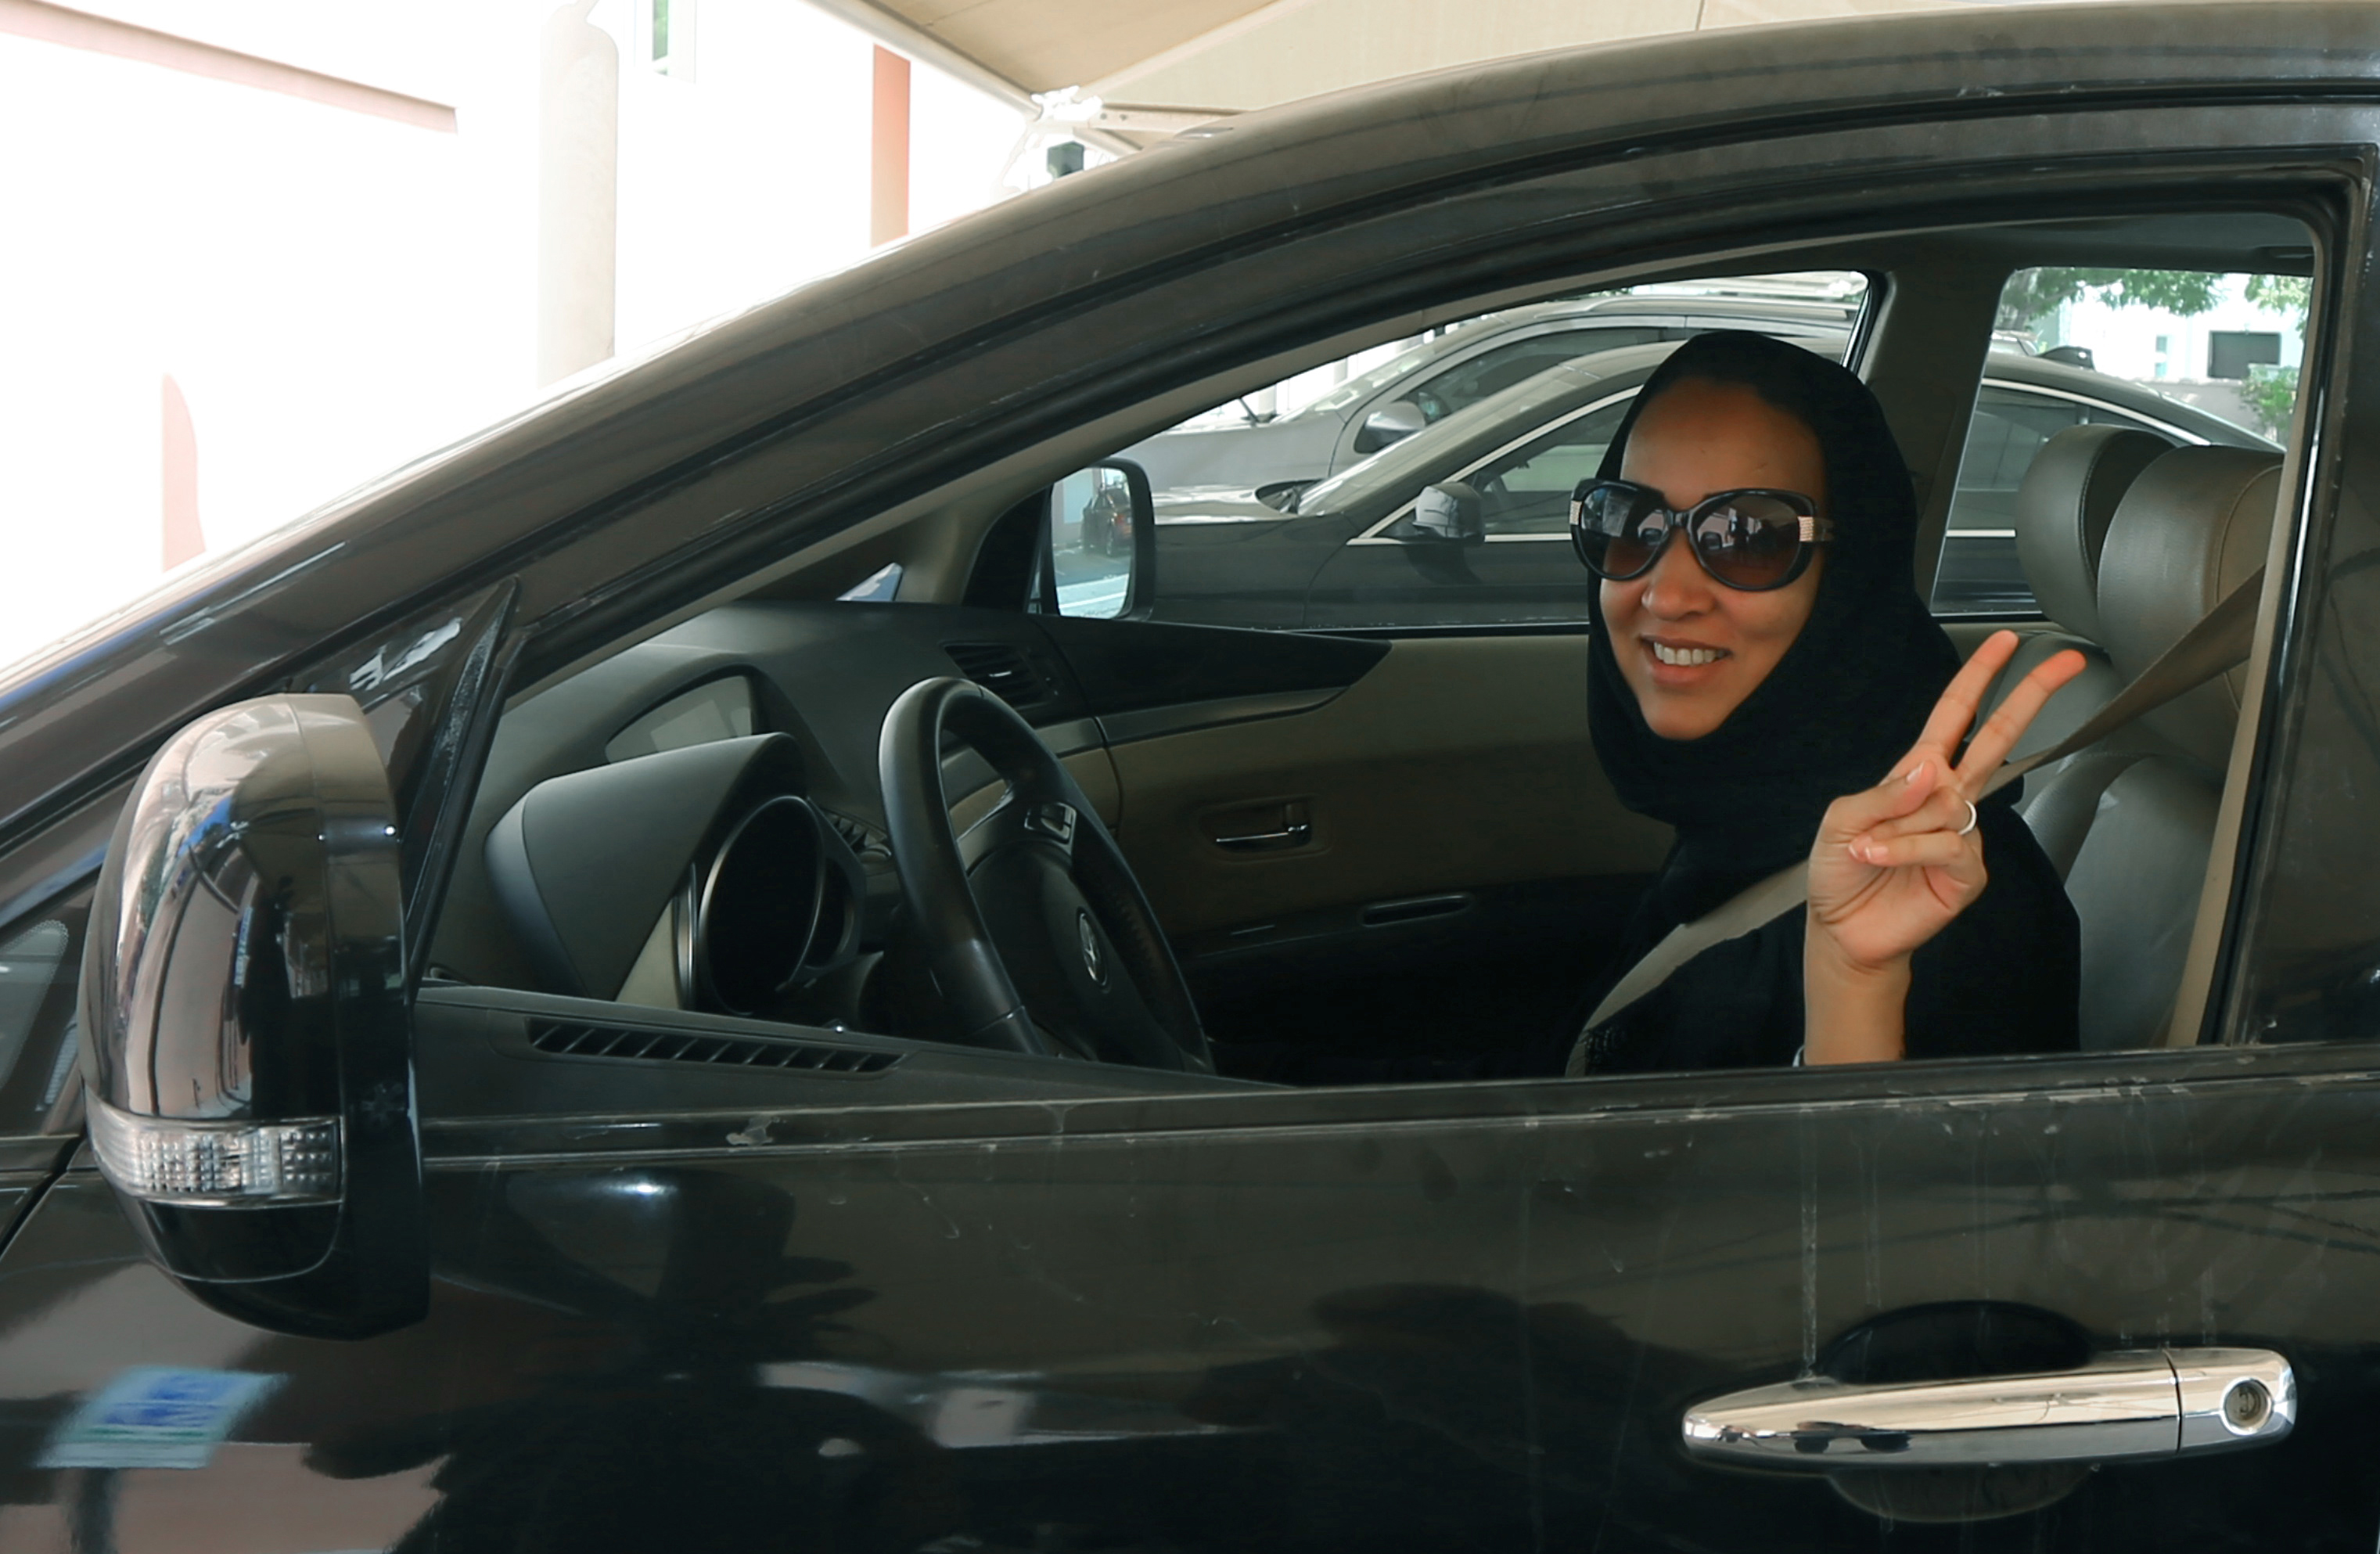 Saudi activist Manal Al Sharif drives her car in the Gulf Emirate city on October 22, 2013, in solidarity with Saudi women preparing to take to the wheel on October 26, defying the Saudi authorities, to campaign women's right to drive in Saudi Arabia.